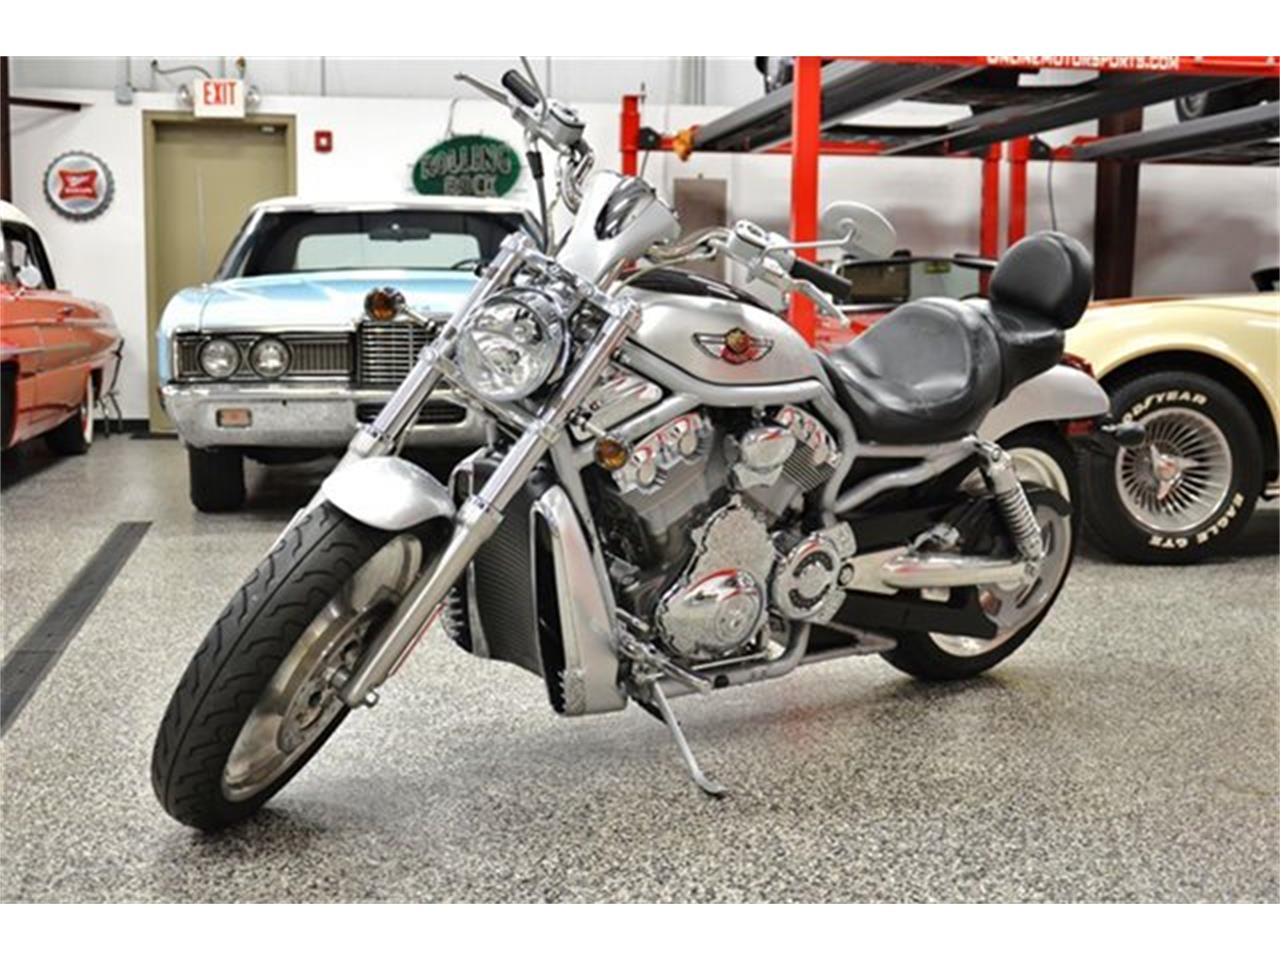 2003 Harley-Davidson VRSC for sale in Plainfield, IL – photo 27